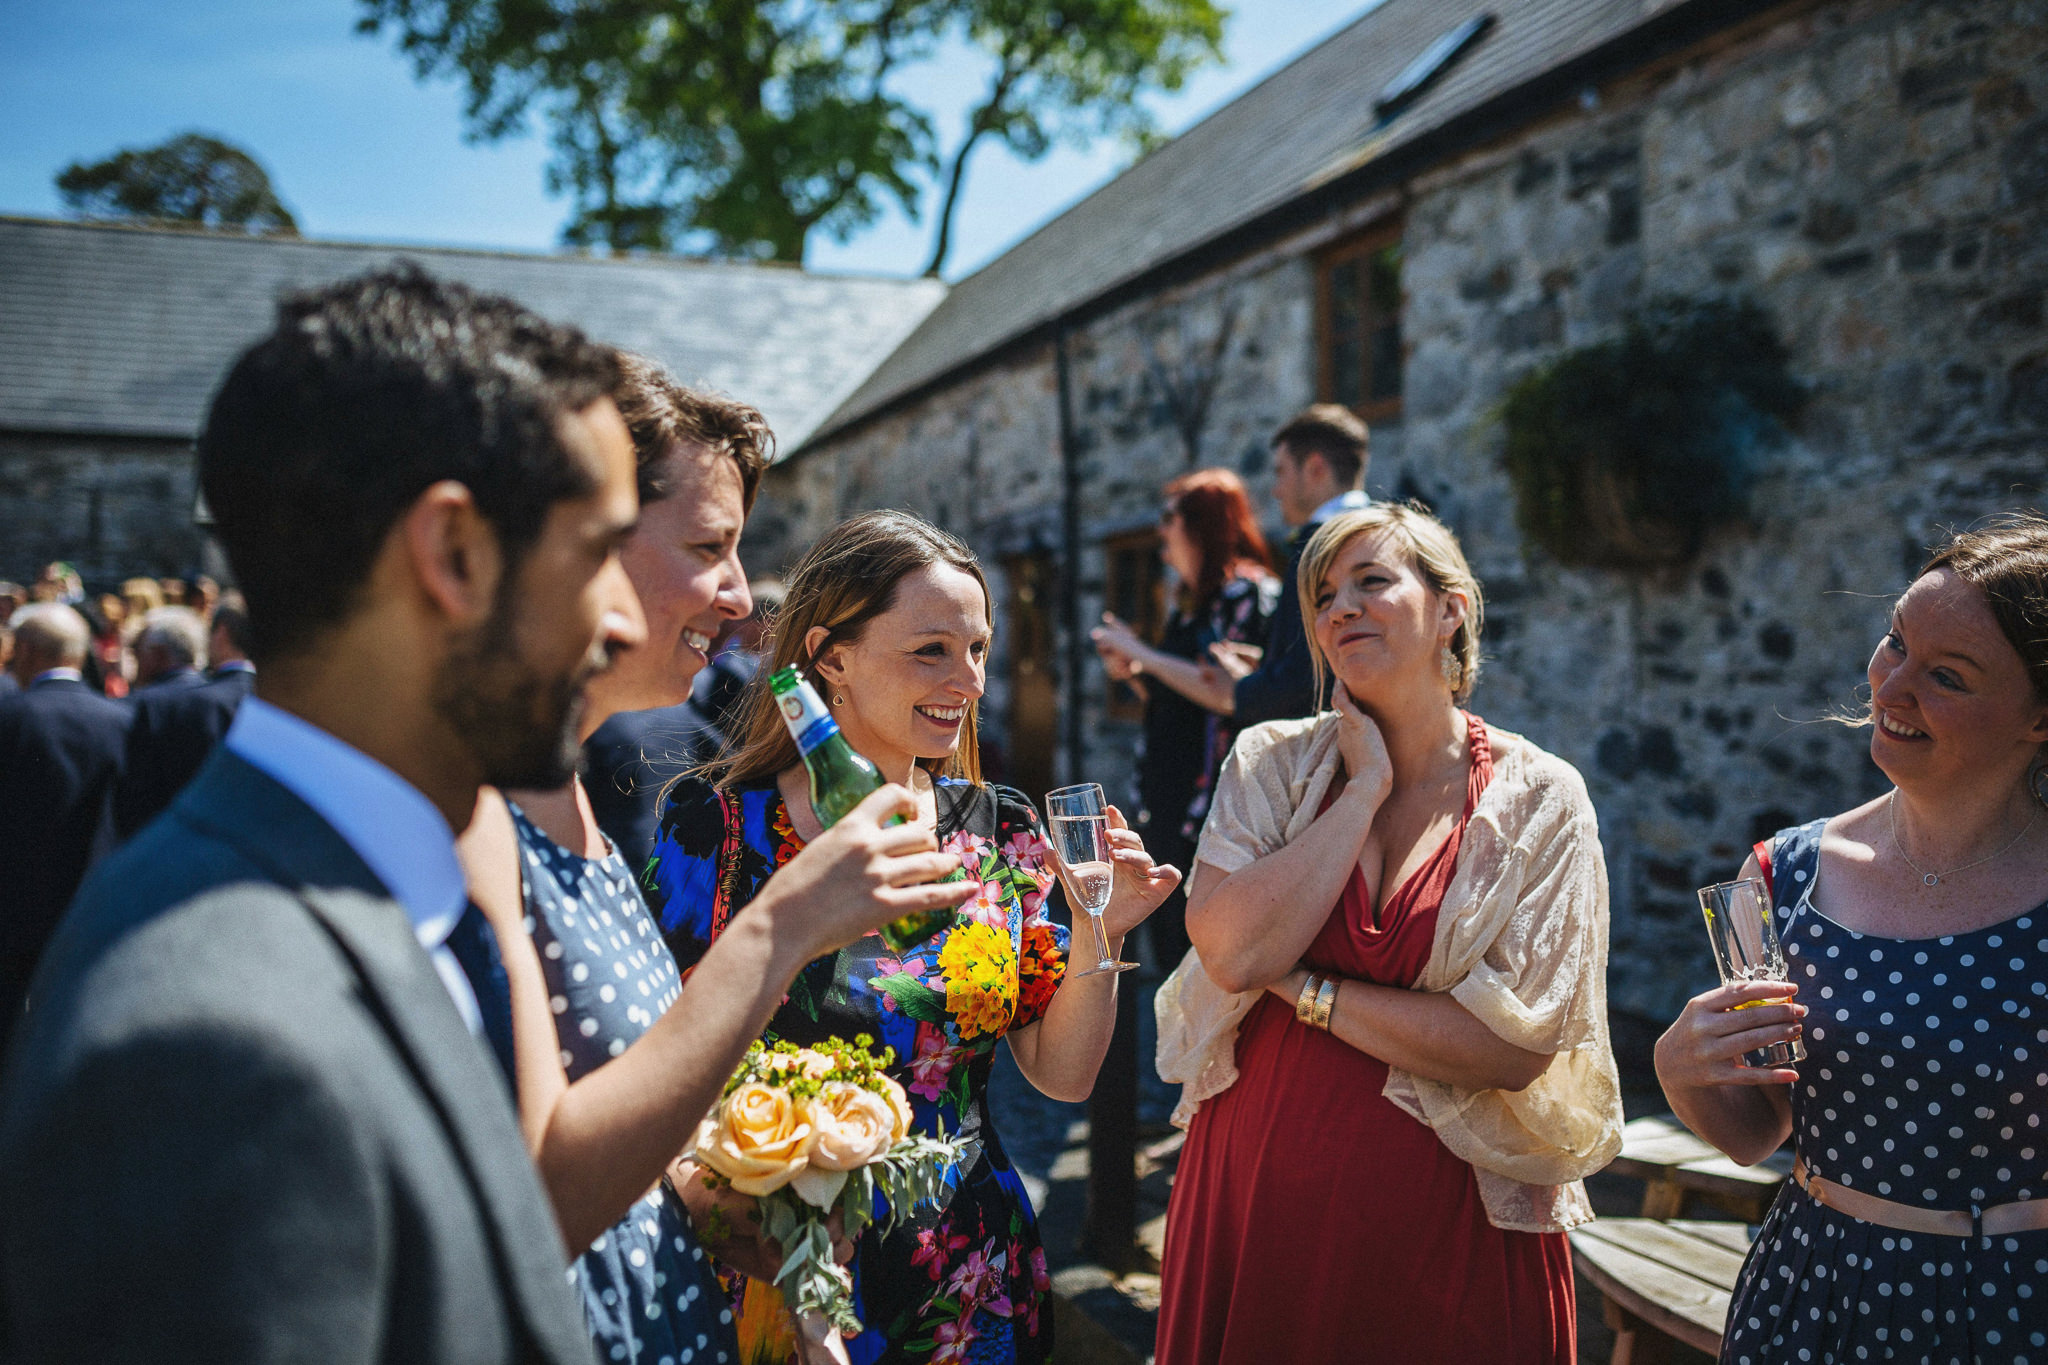 plas-isaf-corwen-north-wales-farm-wedding-photography-photographer-90043